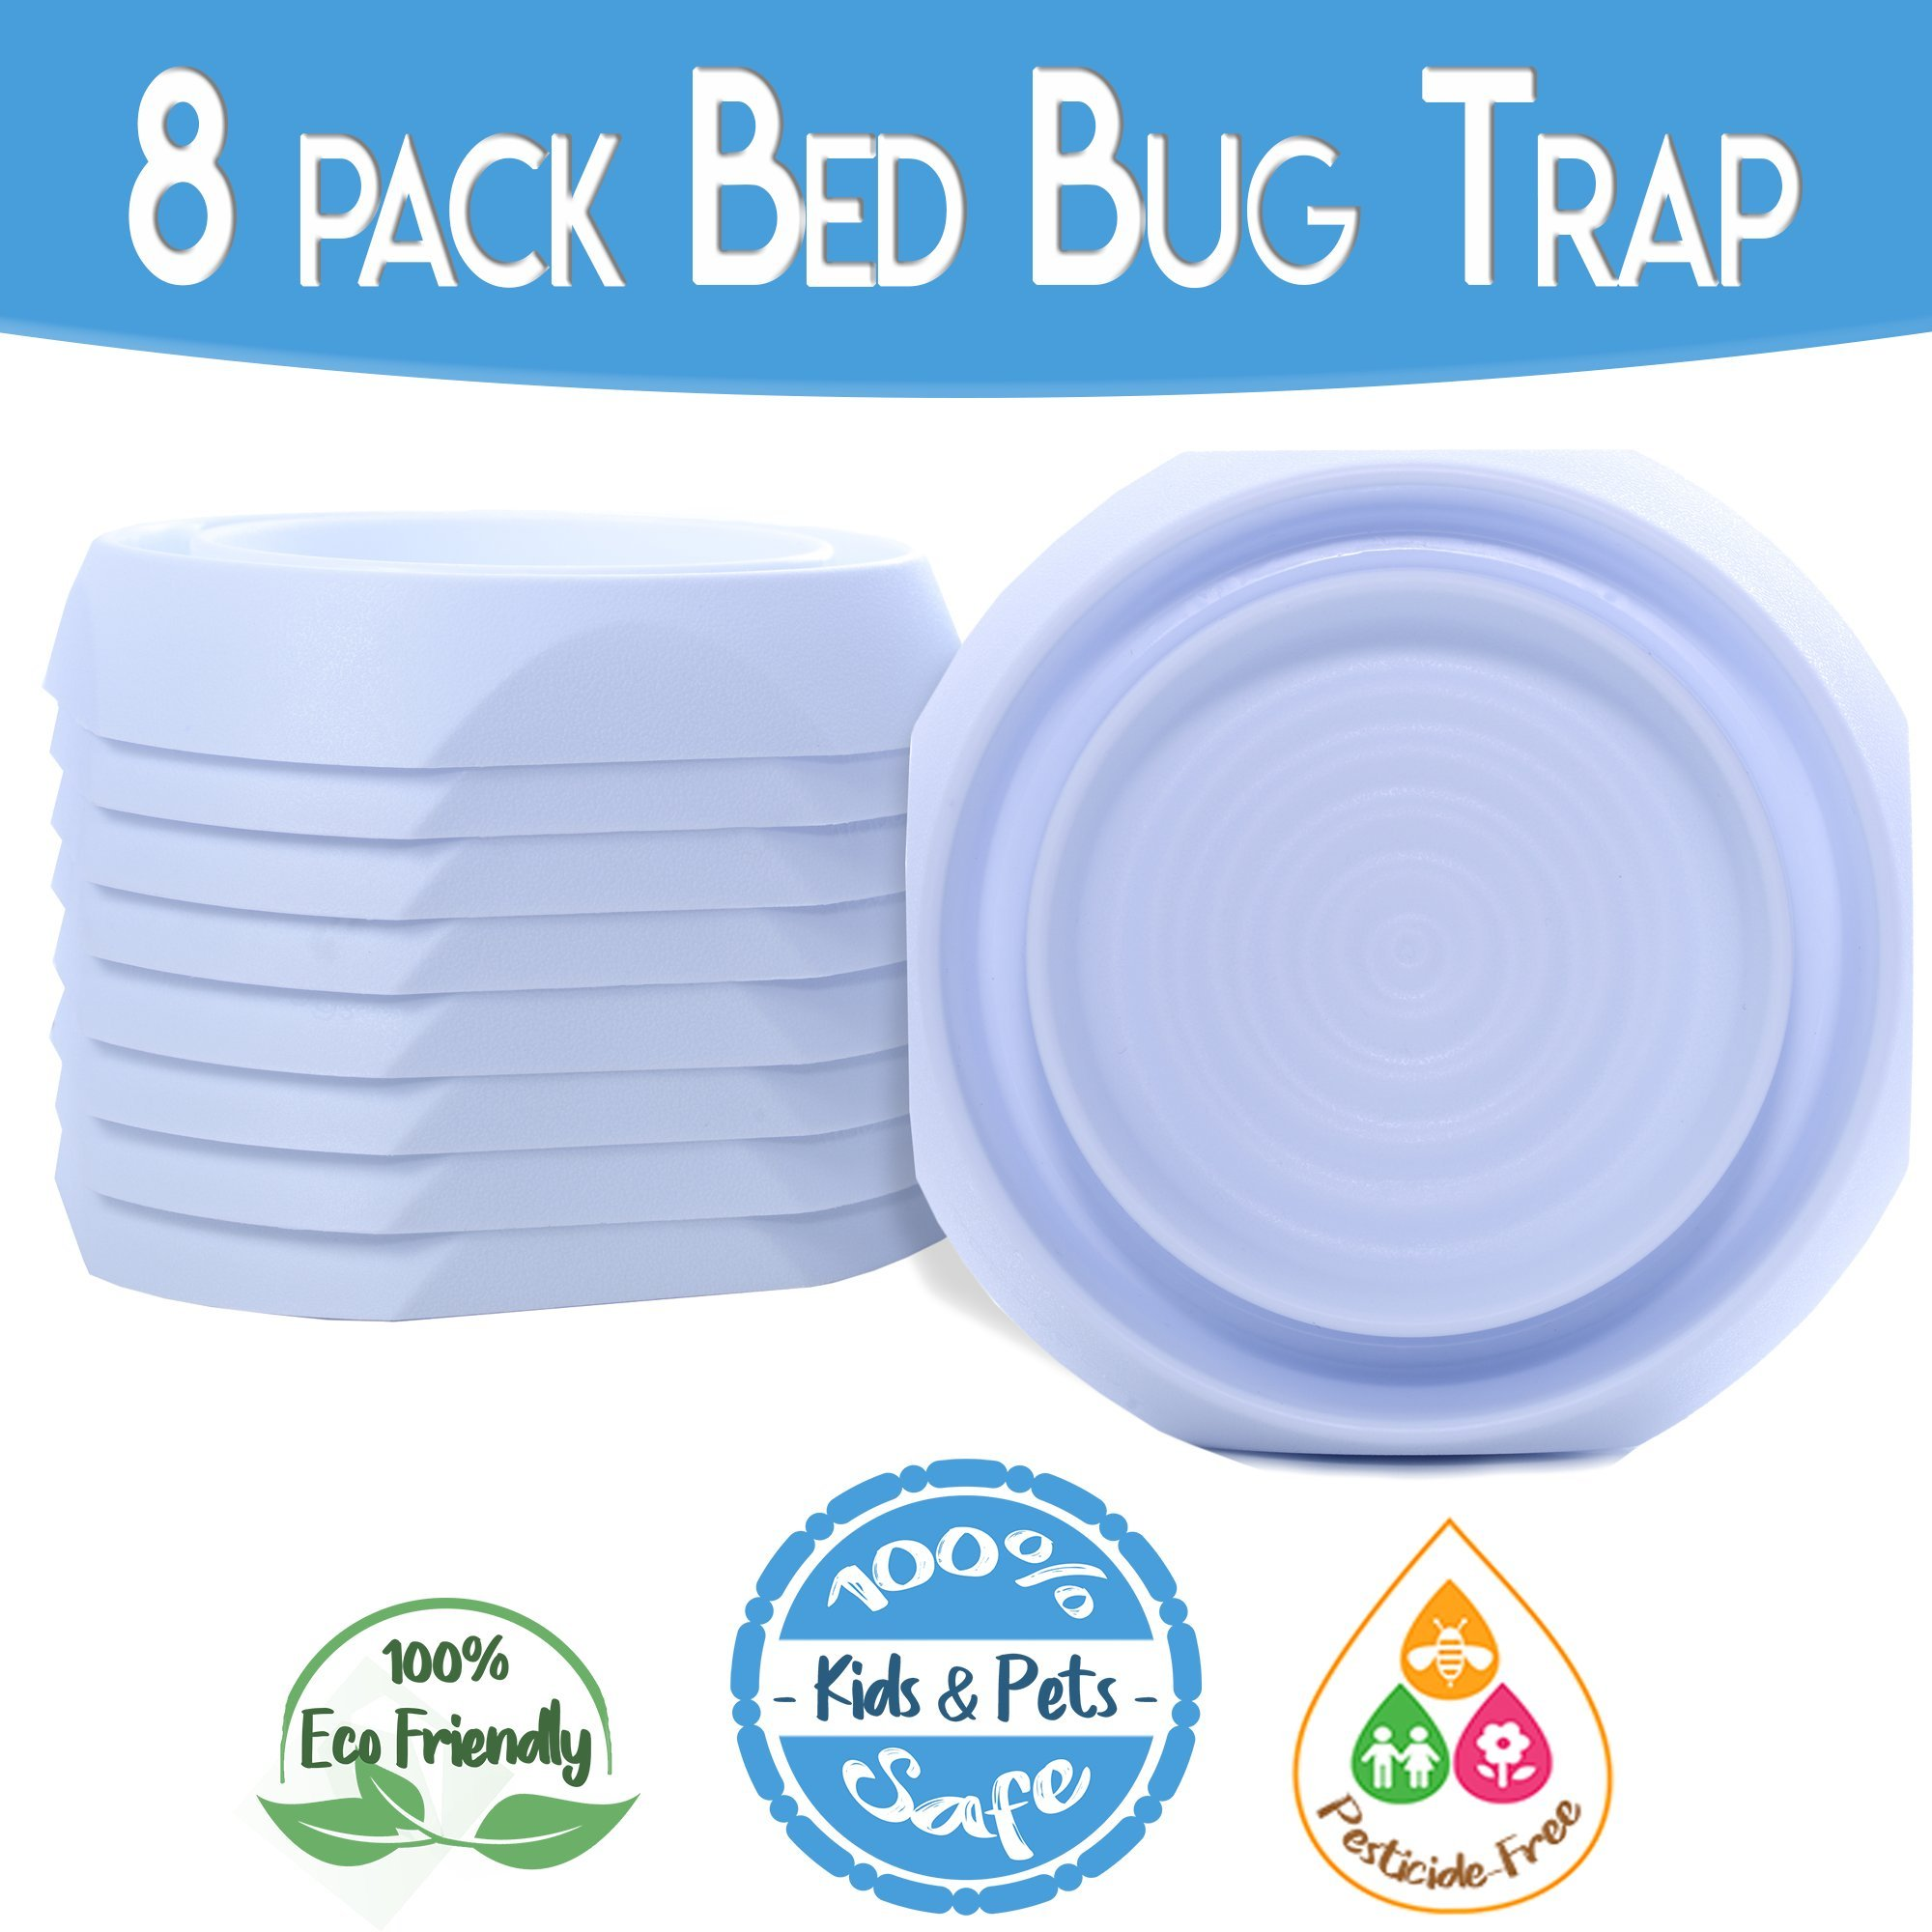 Bed Bug Interceptors Bed Bug Traps 8 PACK White. Bed Bug Cups Design ensures NO Talcum powder, Pesticides or additional products needed. Most RELIABLE Bed Bug Trap on the market